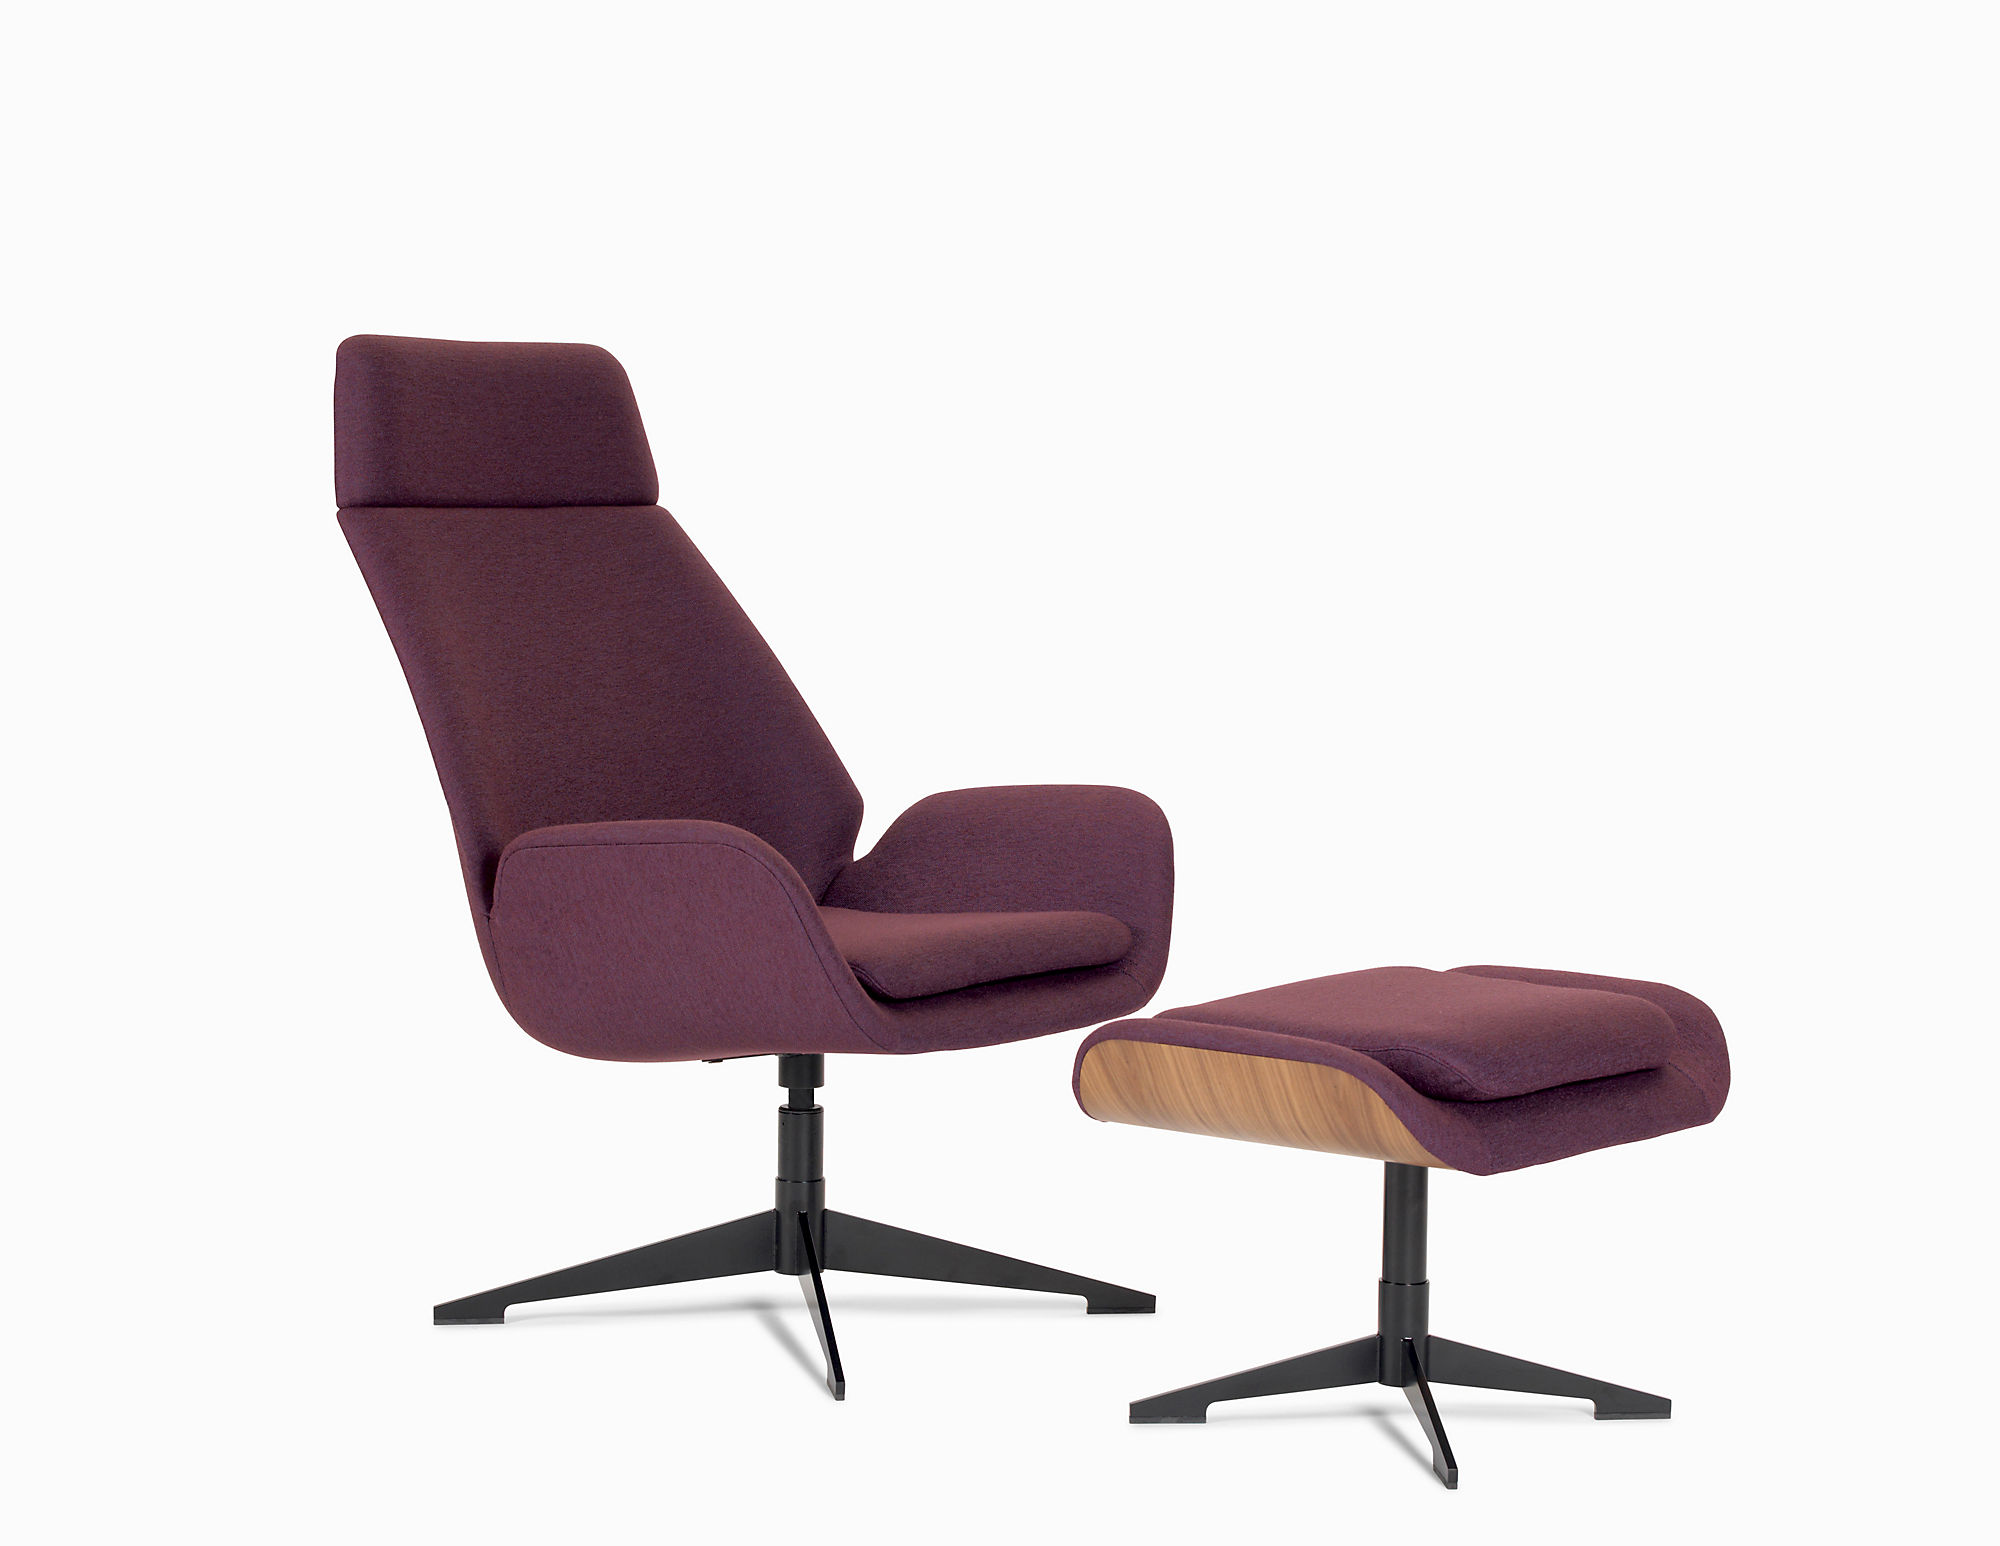 Conexus High Back Upholstered Lounge Chair